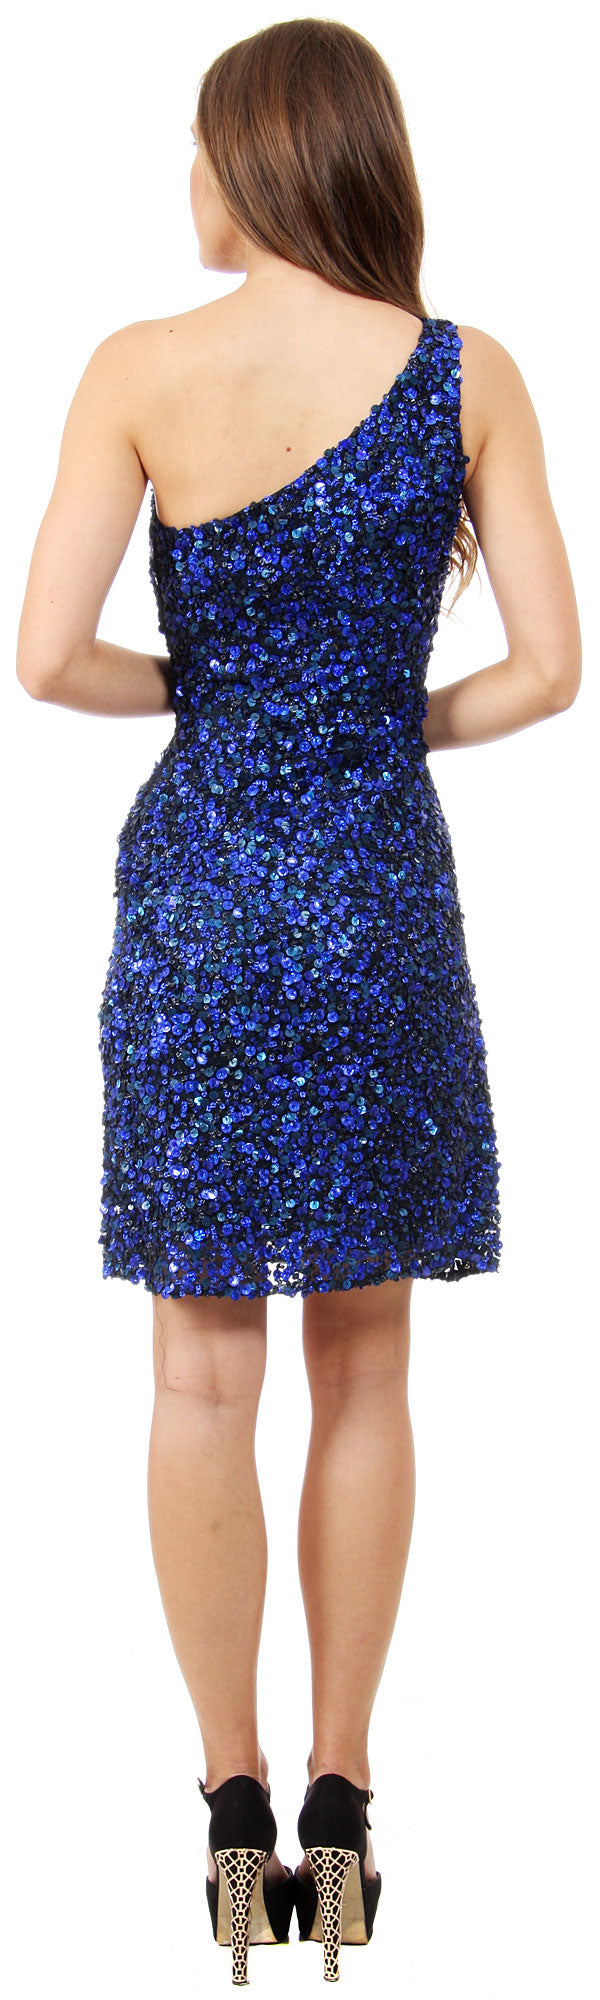 Back image of One Shoulder Short Party Dress With Textured Sequins